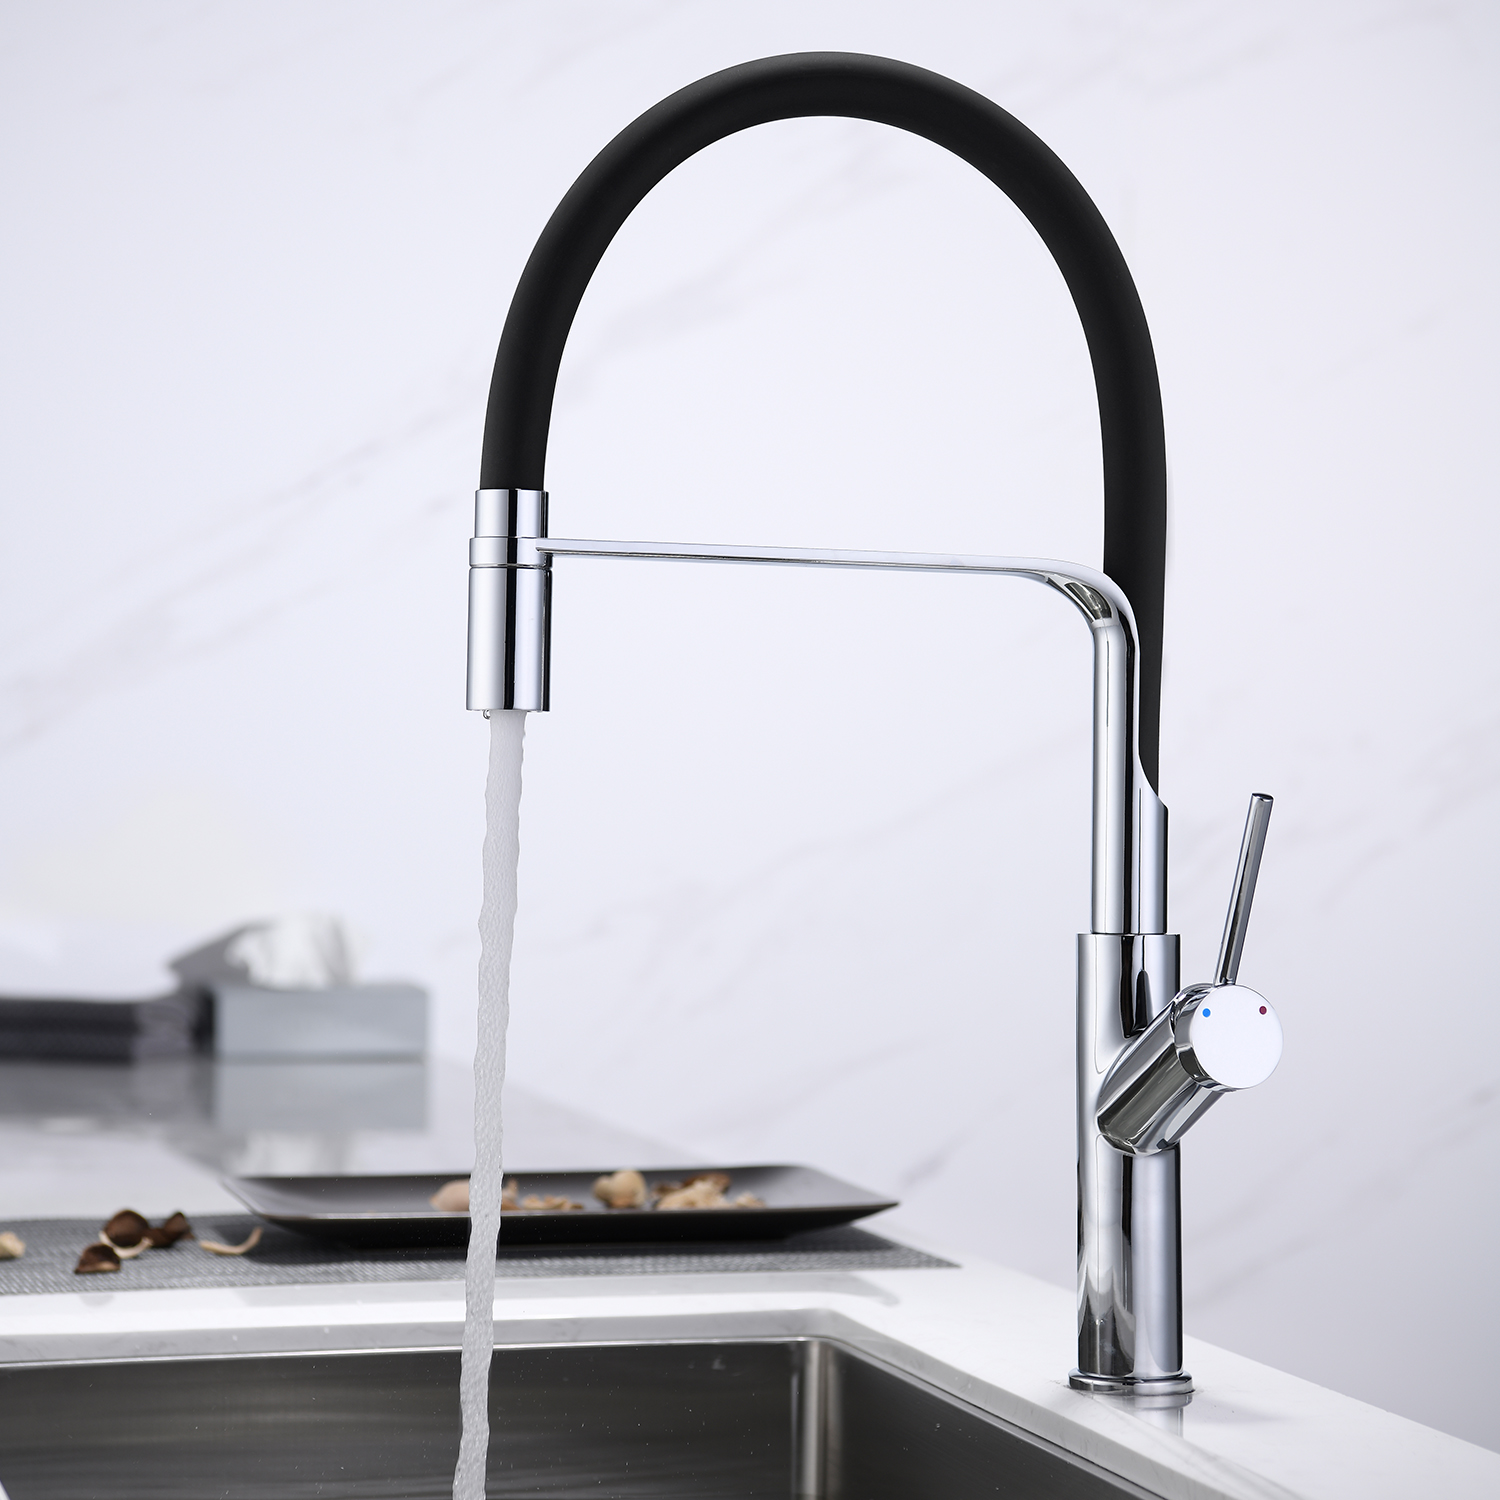 Kitchen Faucet 360 Degree Swivel Basin Faucet Single Lever Silicone Hose Kitchen Water Tap Bathroom Sink Faucet Kitchen Mixer